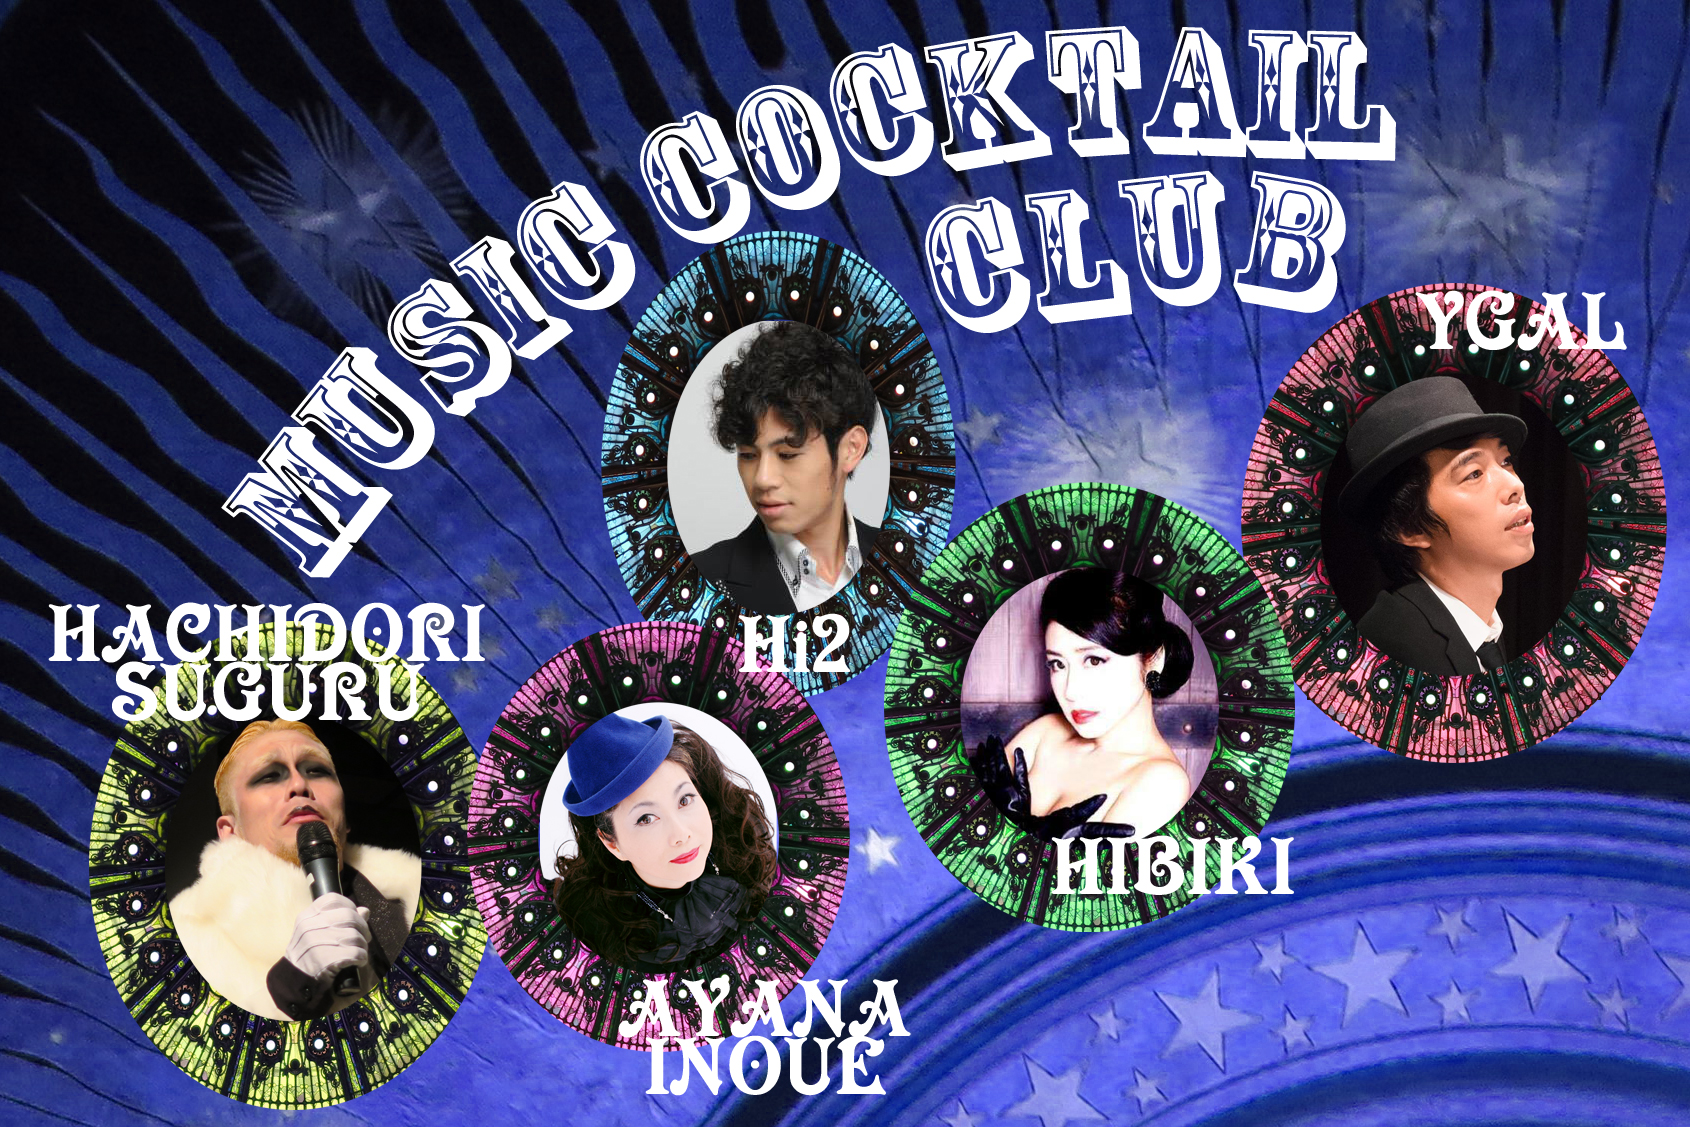 MUSIC COCKTAIL CLUB レシピ・5